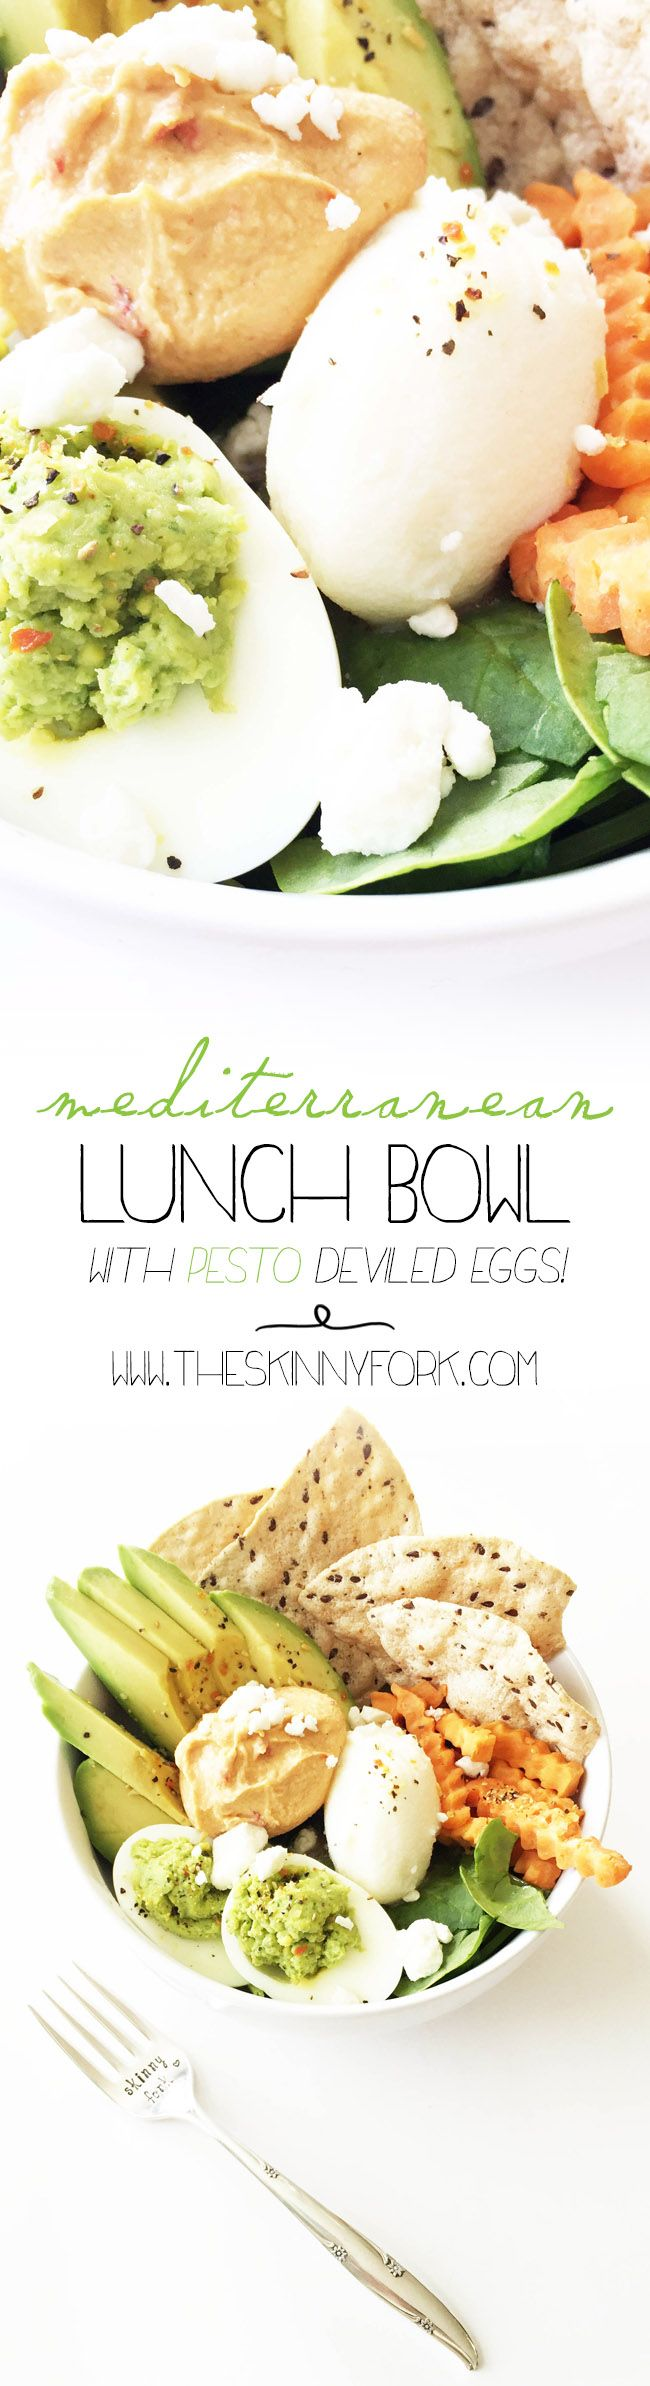 This mediterranean lunch bowl is packed with plenty of vegetables and protein too. Also, these pesto deviled eggs are amazing and so easy! TheSkinnyFork.com | Skinny & Healthy Recipes